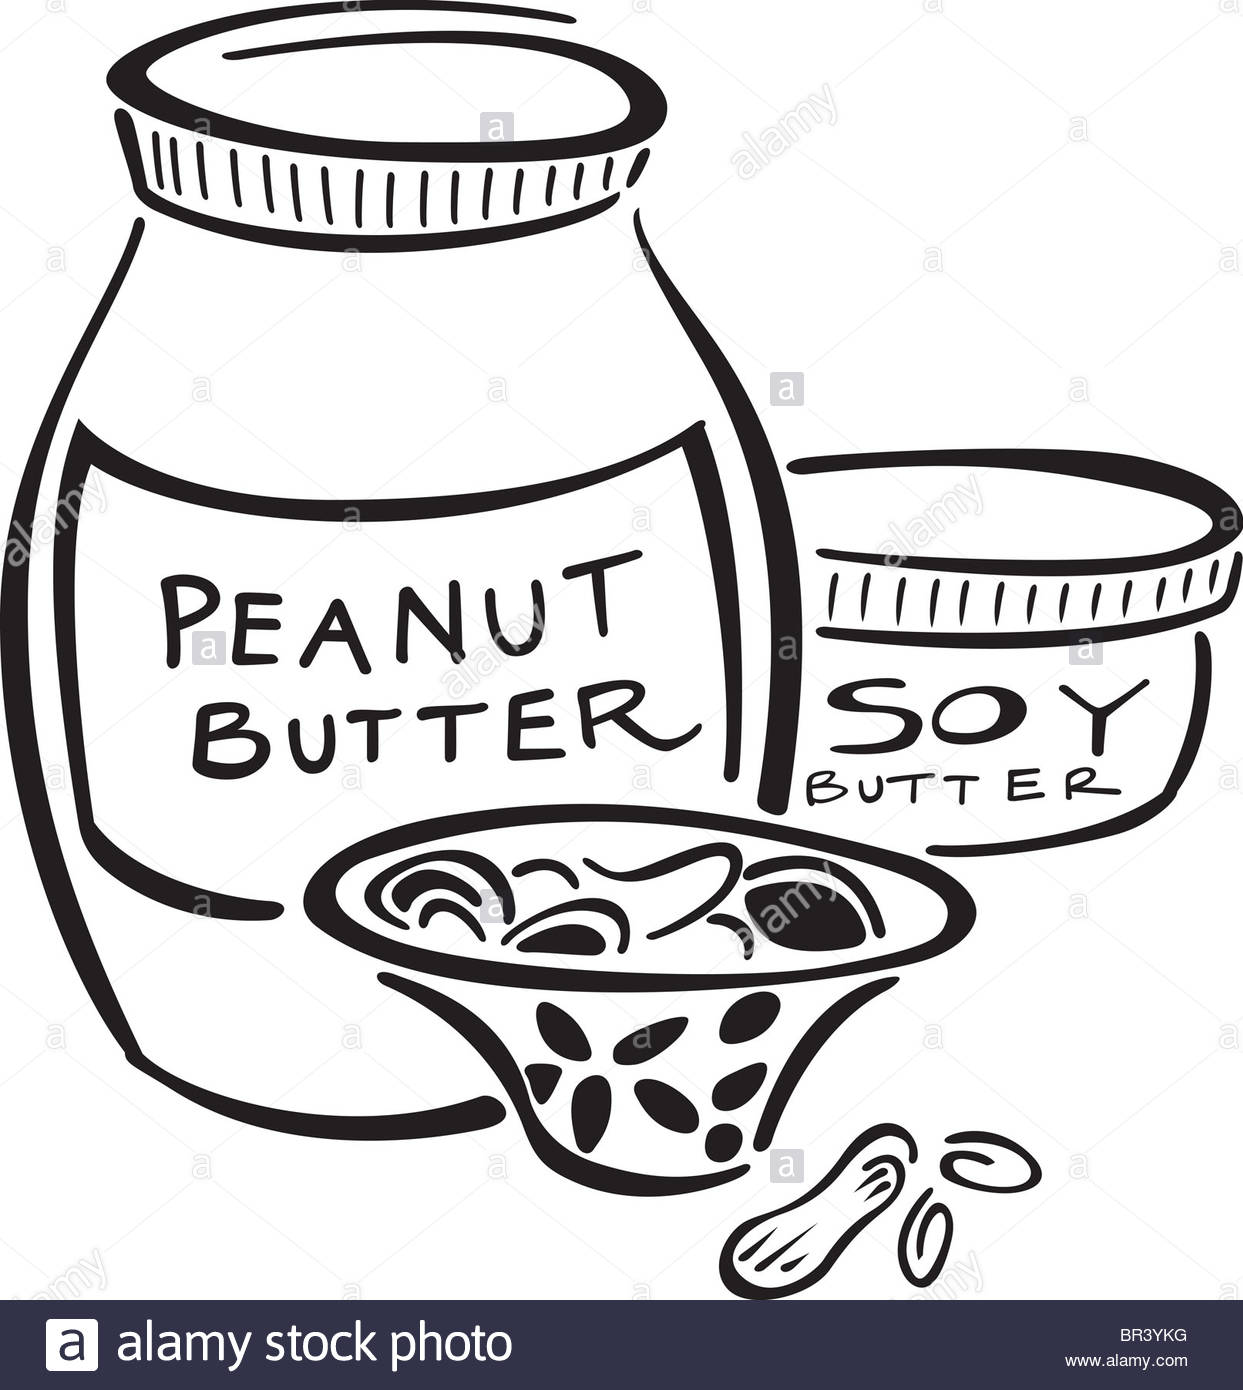 1243x1390 Peanut Butter,soy Butter And A Bowl Of Nuts Stock Photo, Royalty